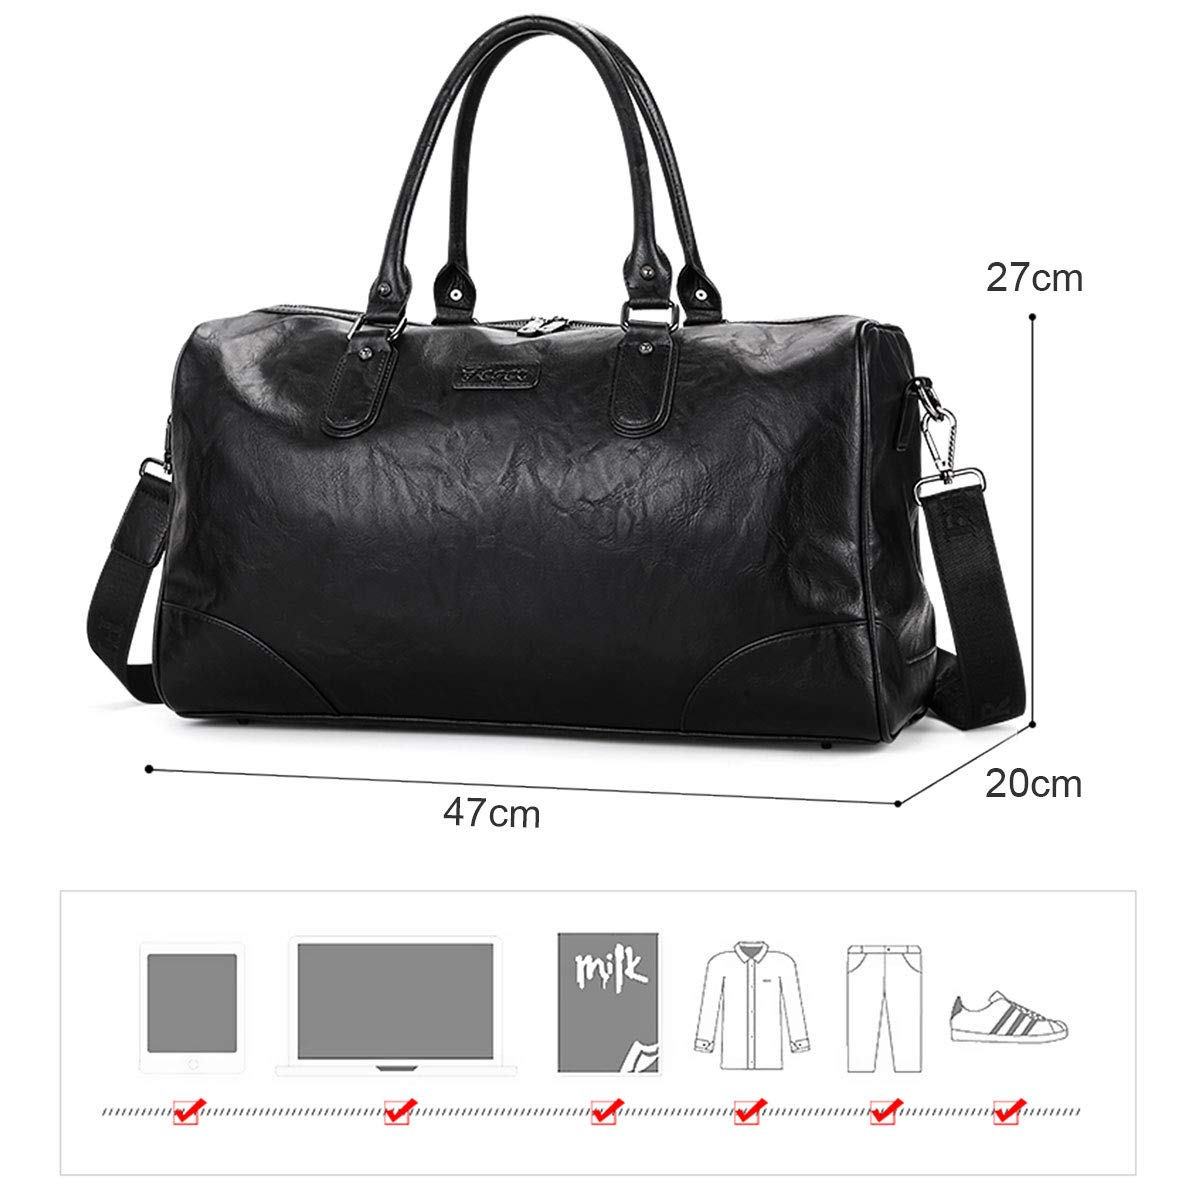 179deff61 Amazon.com | BAIGIO Men's Vintage Duffel Weekend Bag Oversize Travel Tote  Faux Leather Overnight Duffle (Black) | Travel Duffels